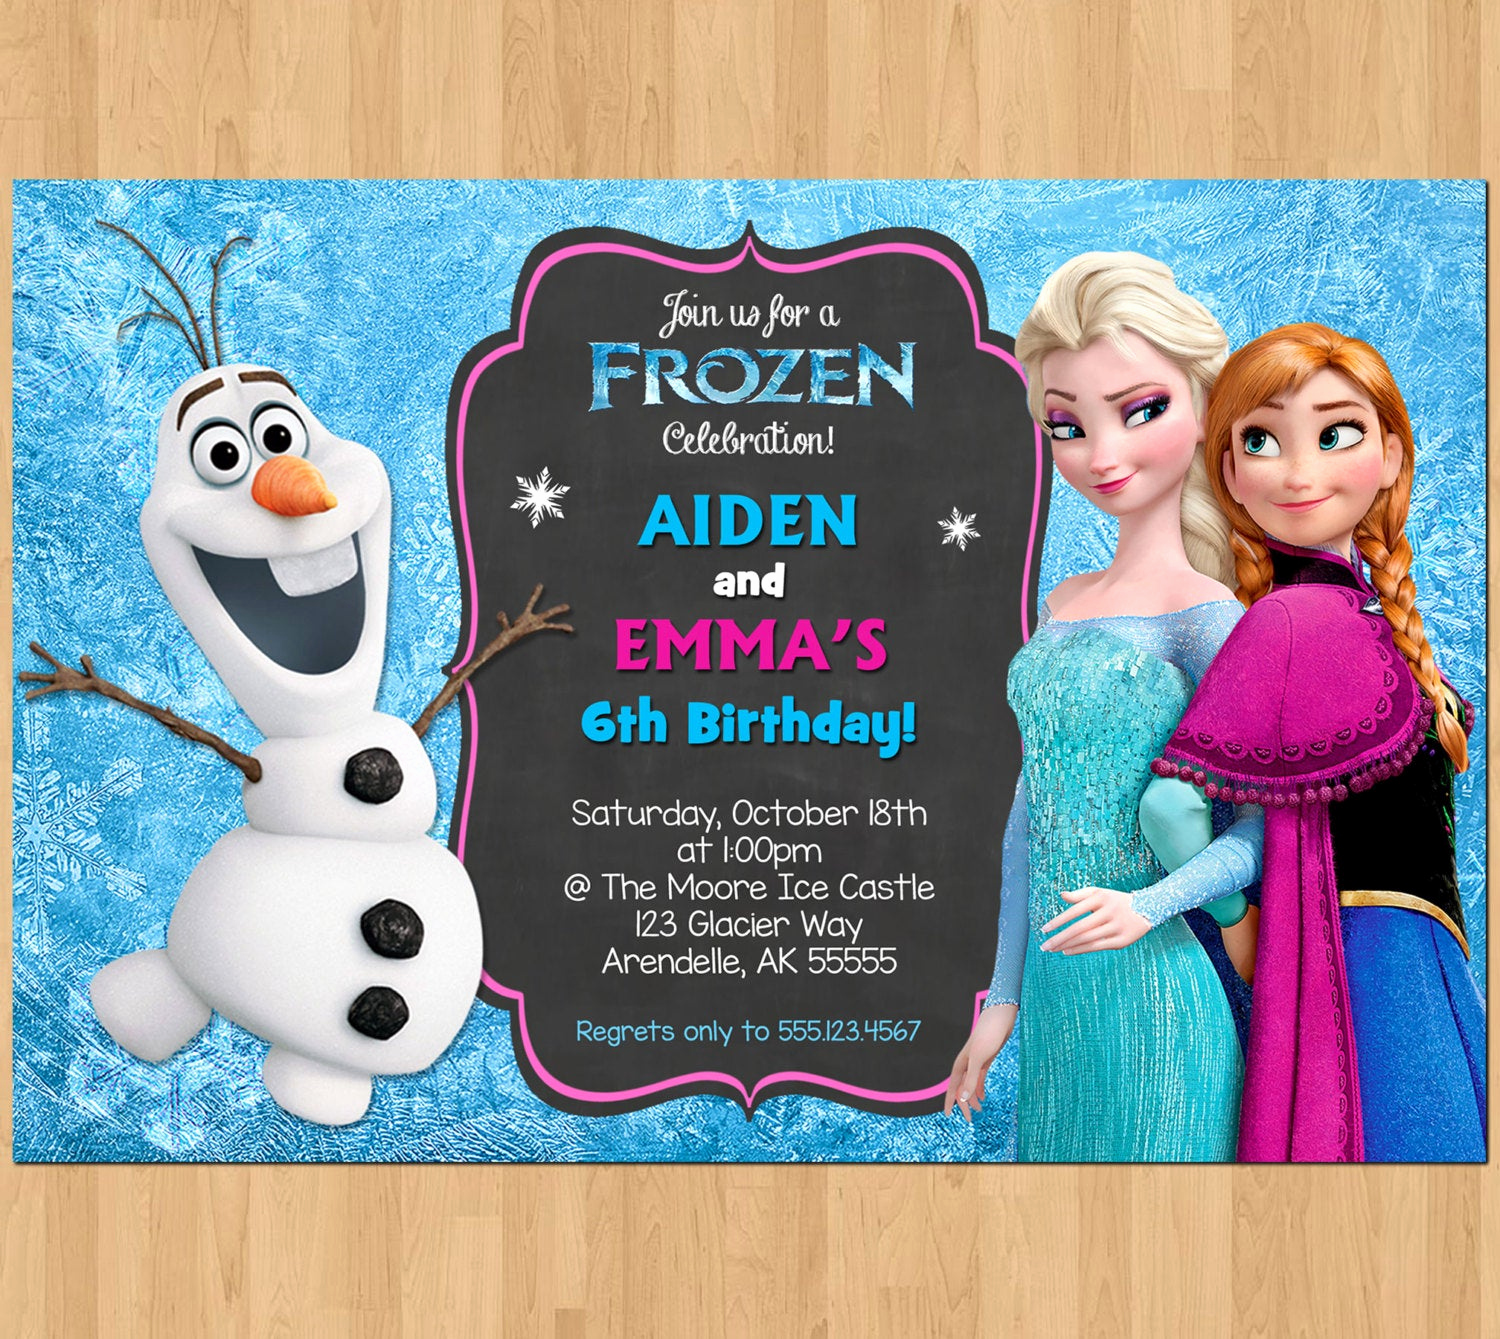 Frozen Bday Party Invitations Awesome Sibling Birthday Invitation Frozen Invitation Olaf Elsa Anna